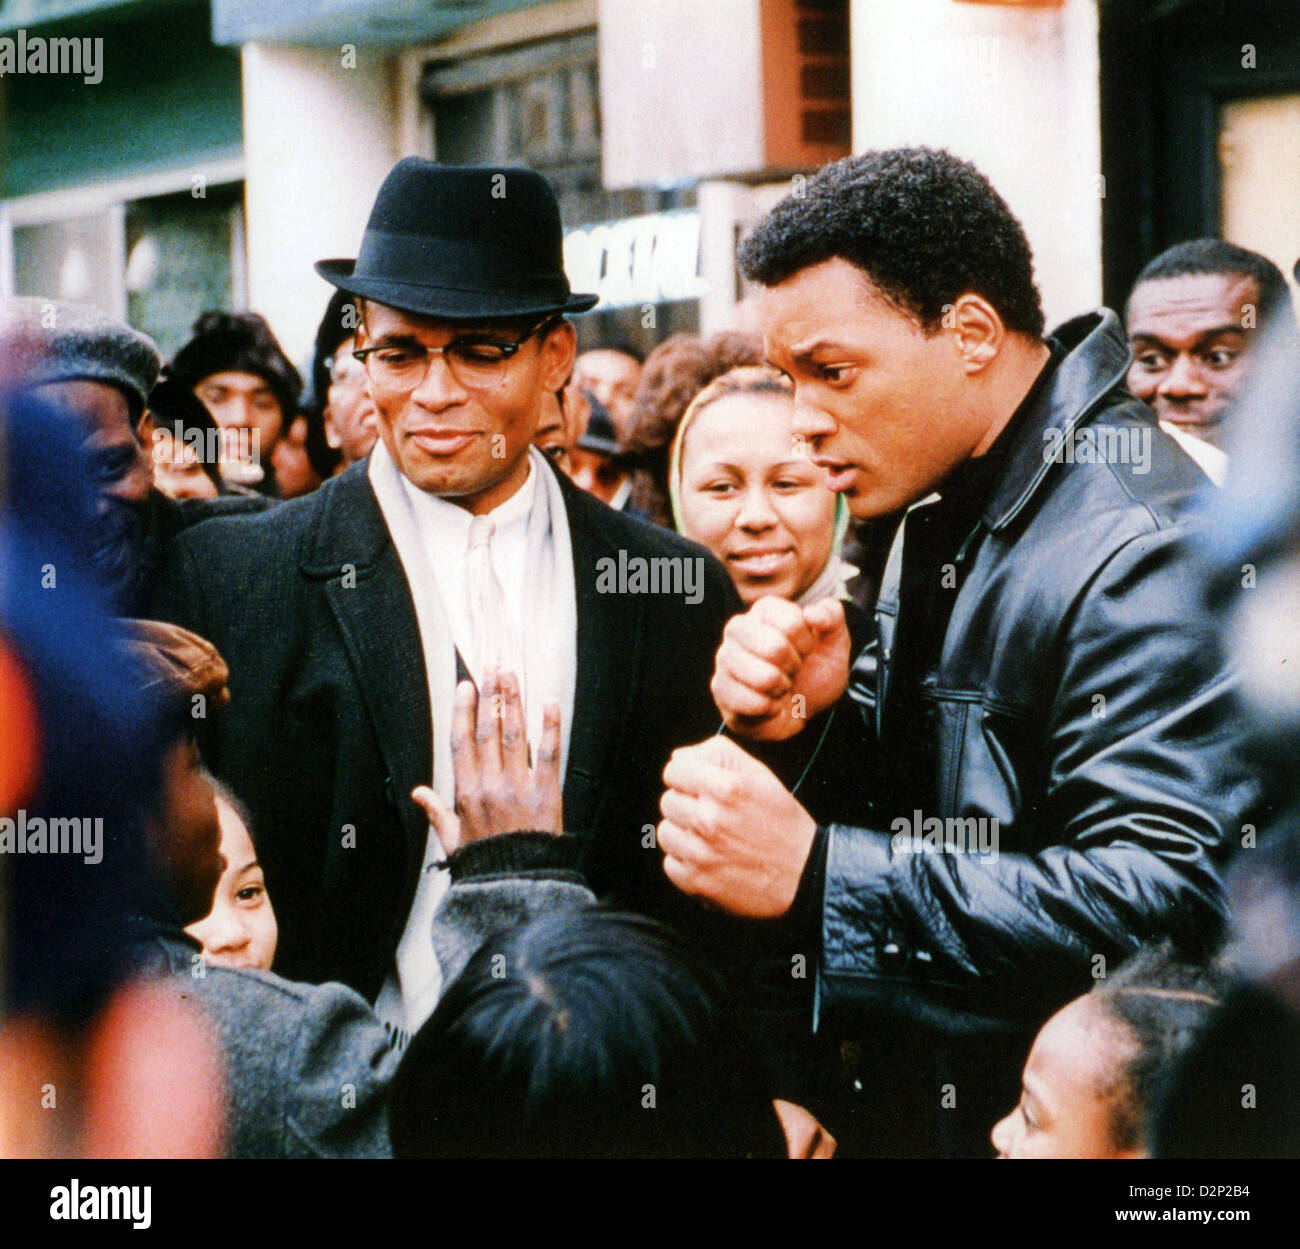 ALI 2001 Columbia Pictures film with Will Smith as boxer Muhammad Ali and Mario Van Peebles as Malcolm X - Stock Image